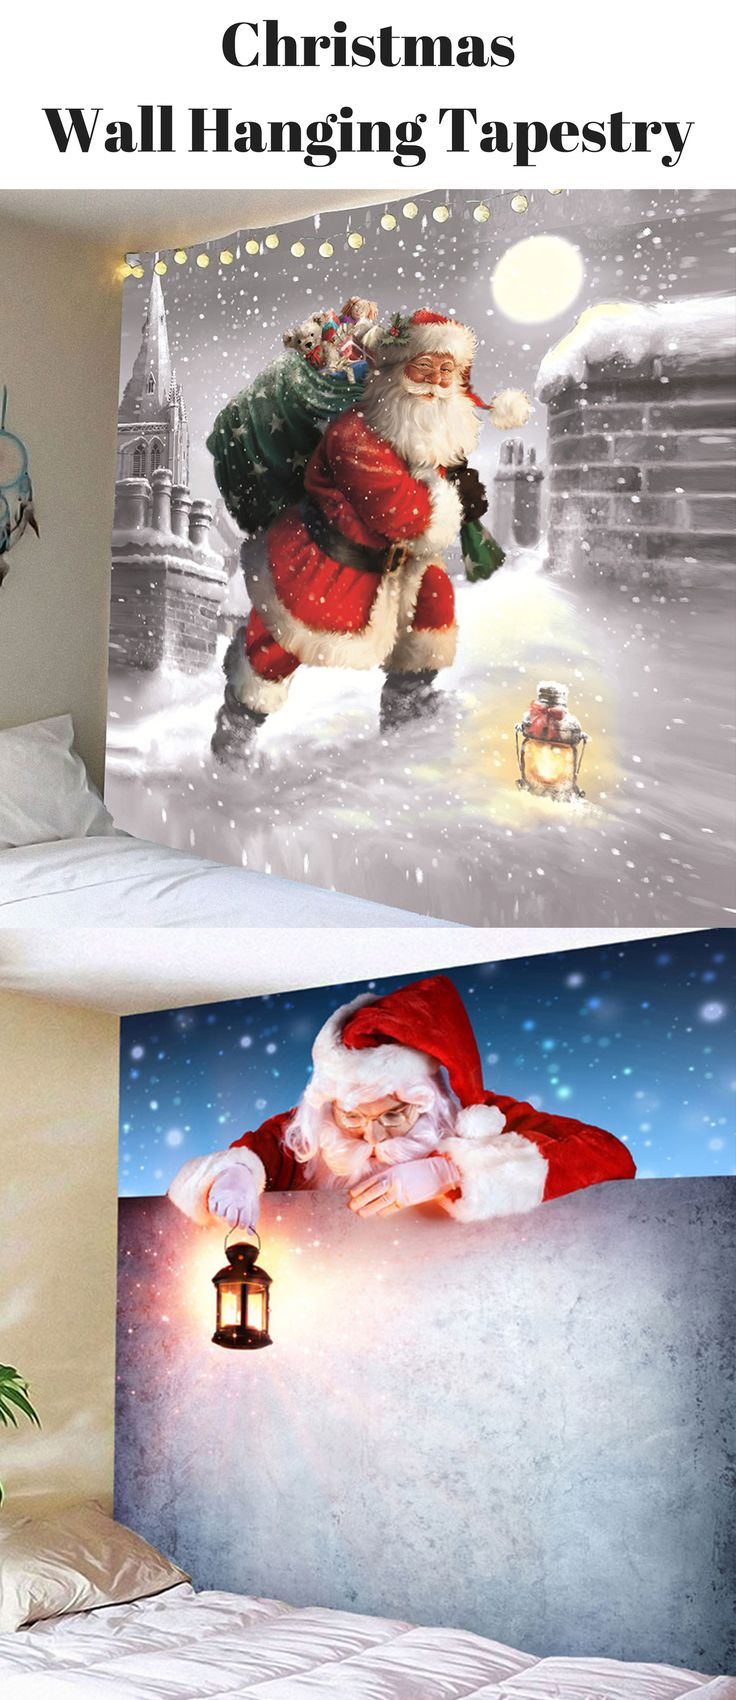 Christmas Santa Wall Hanging Tapestry | From $9 |